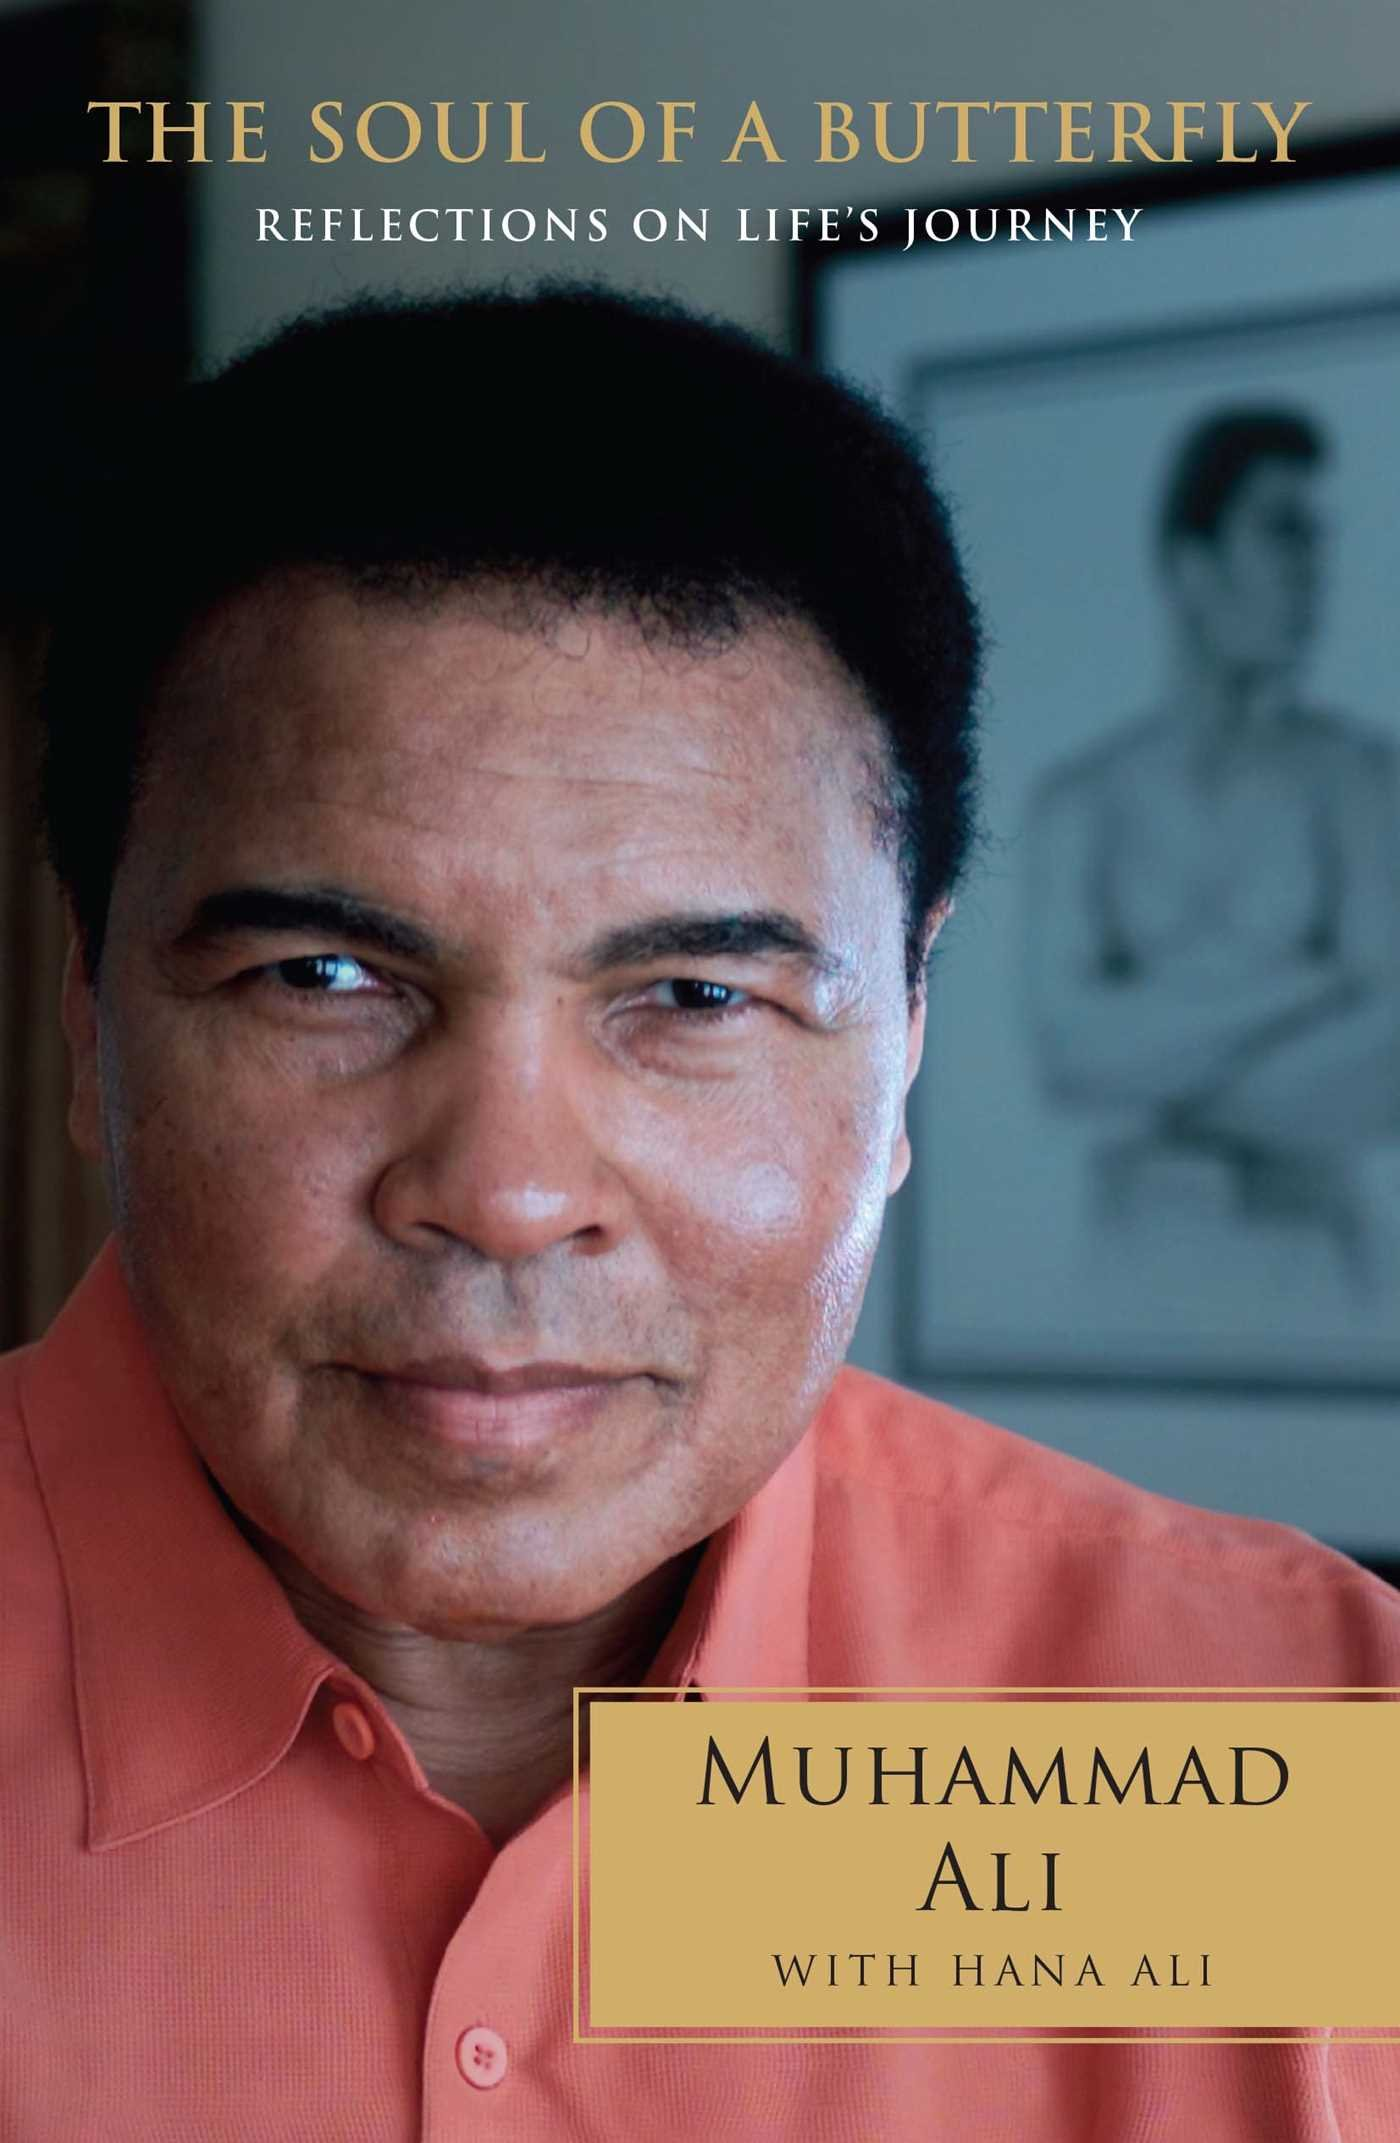 The Soul of a Butterfly: Reflections on Lifes Journey: Amazon.es: Muhammad Ali, Hana Yasmeen Ali: Libros en idiomas extranjeros